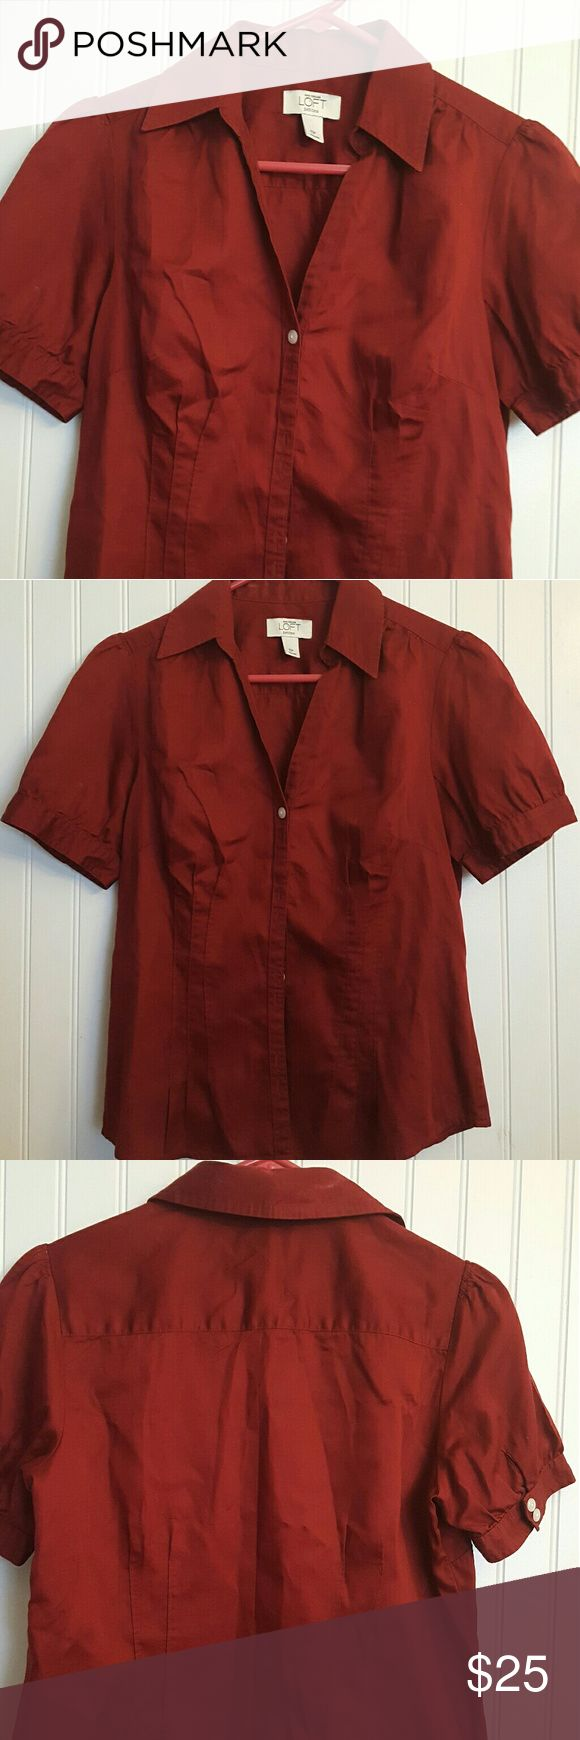 Cute Ann Taylor Loft Petites Shirt Burgandy Color, cotton button down shirt. Perfect with a little black skirt! Ann Taylor Tops